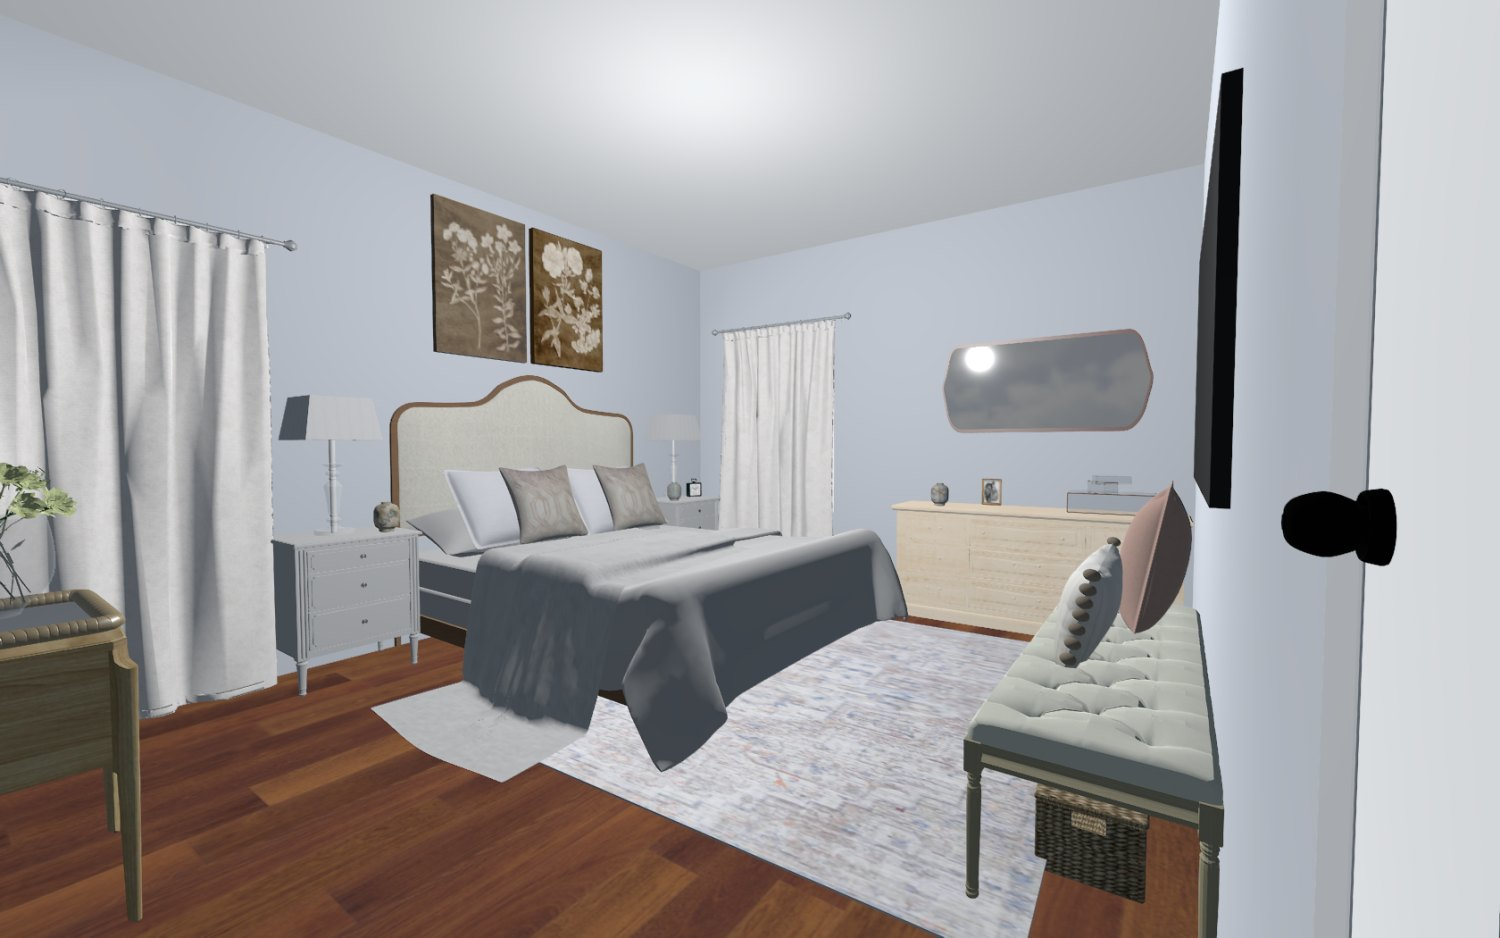 3D Design For Caroline New Bedroom View